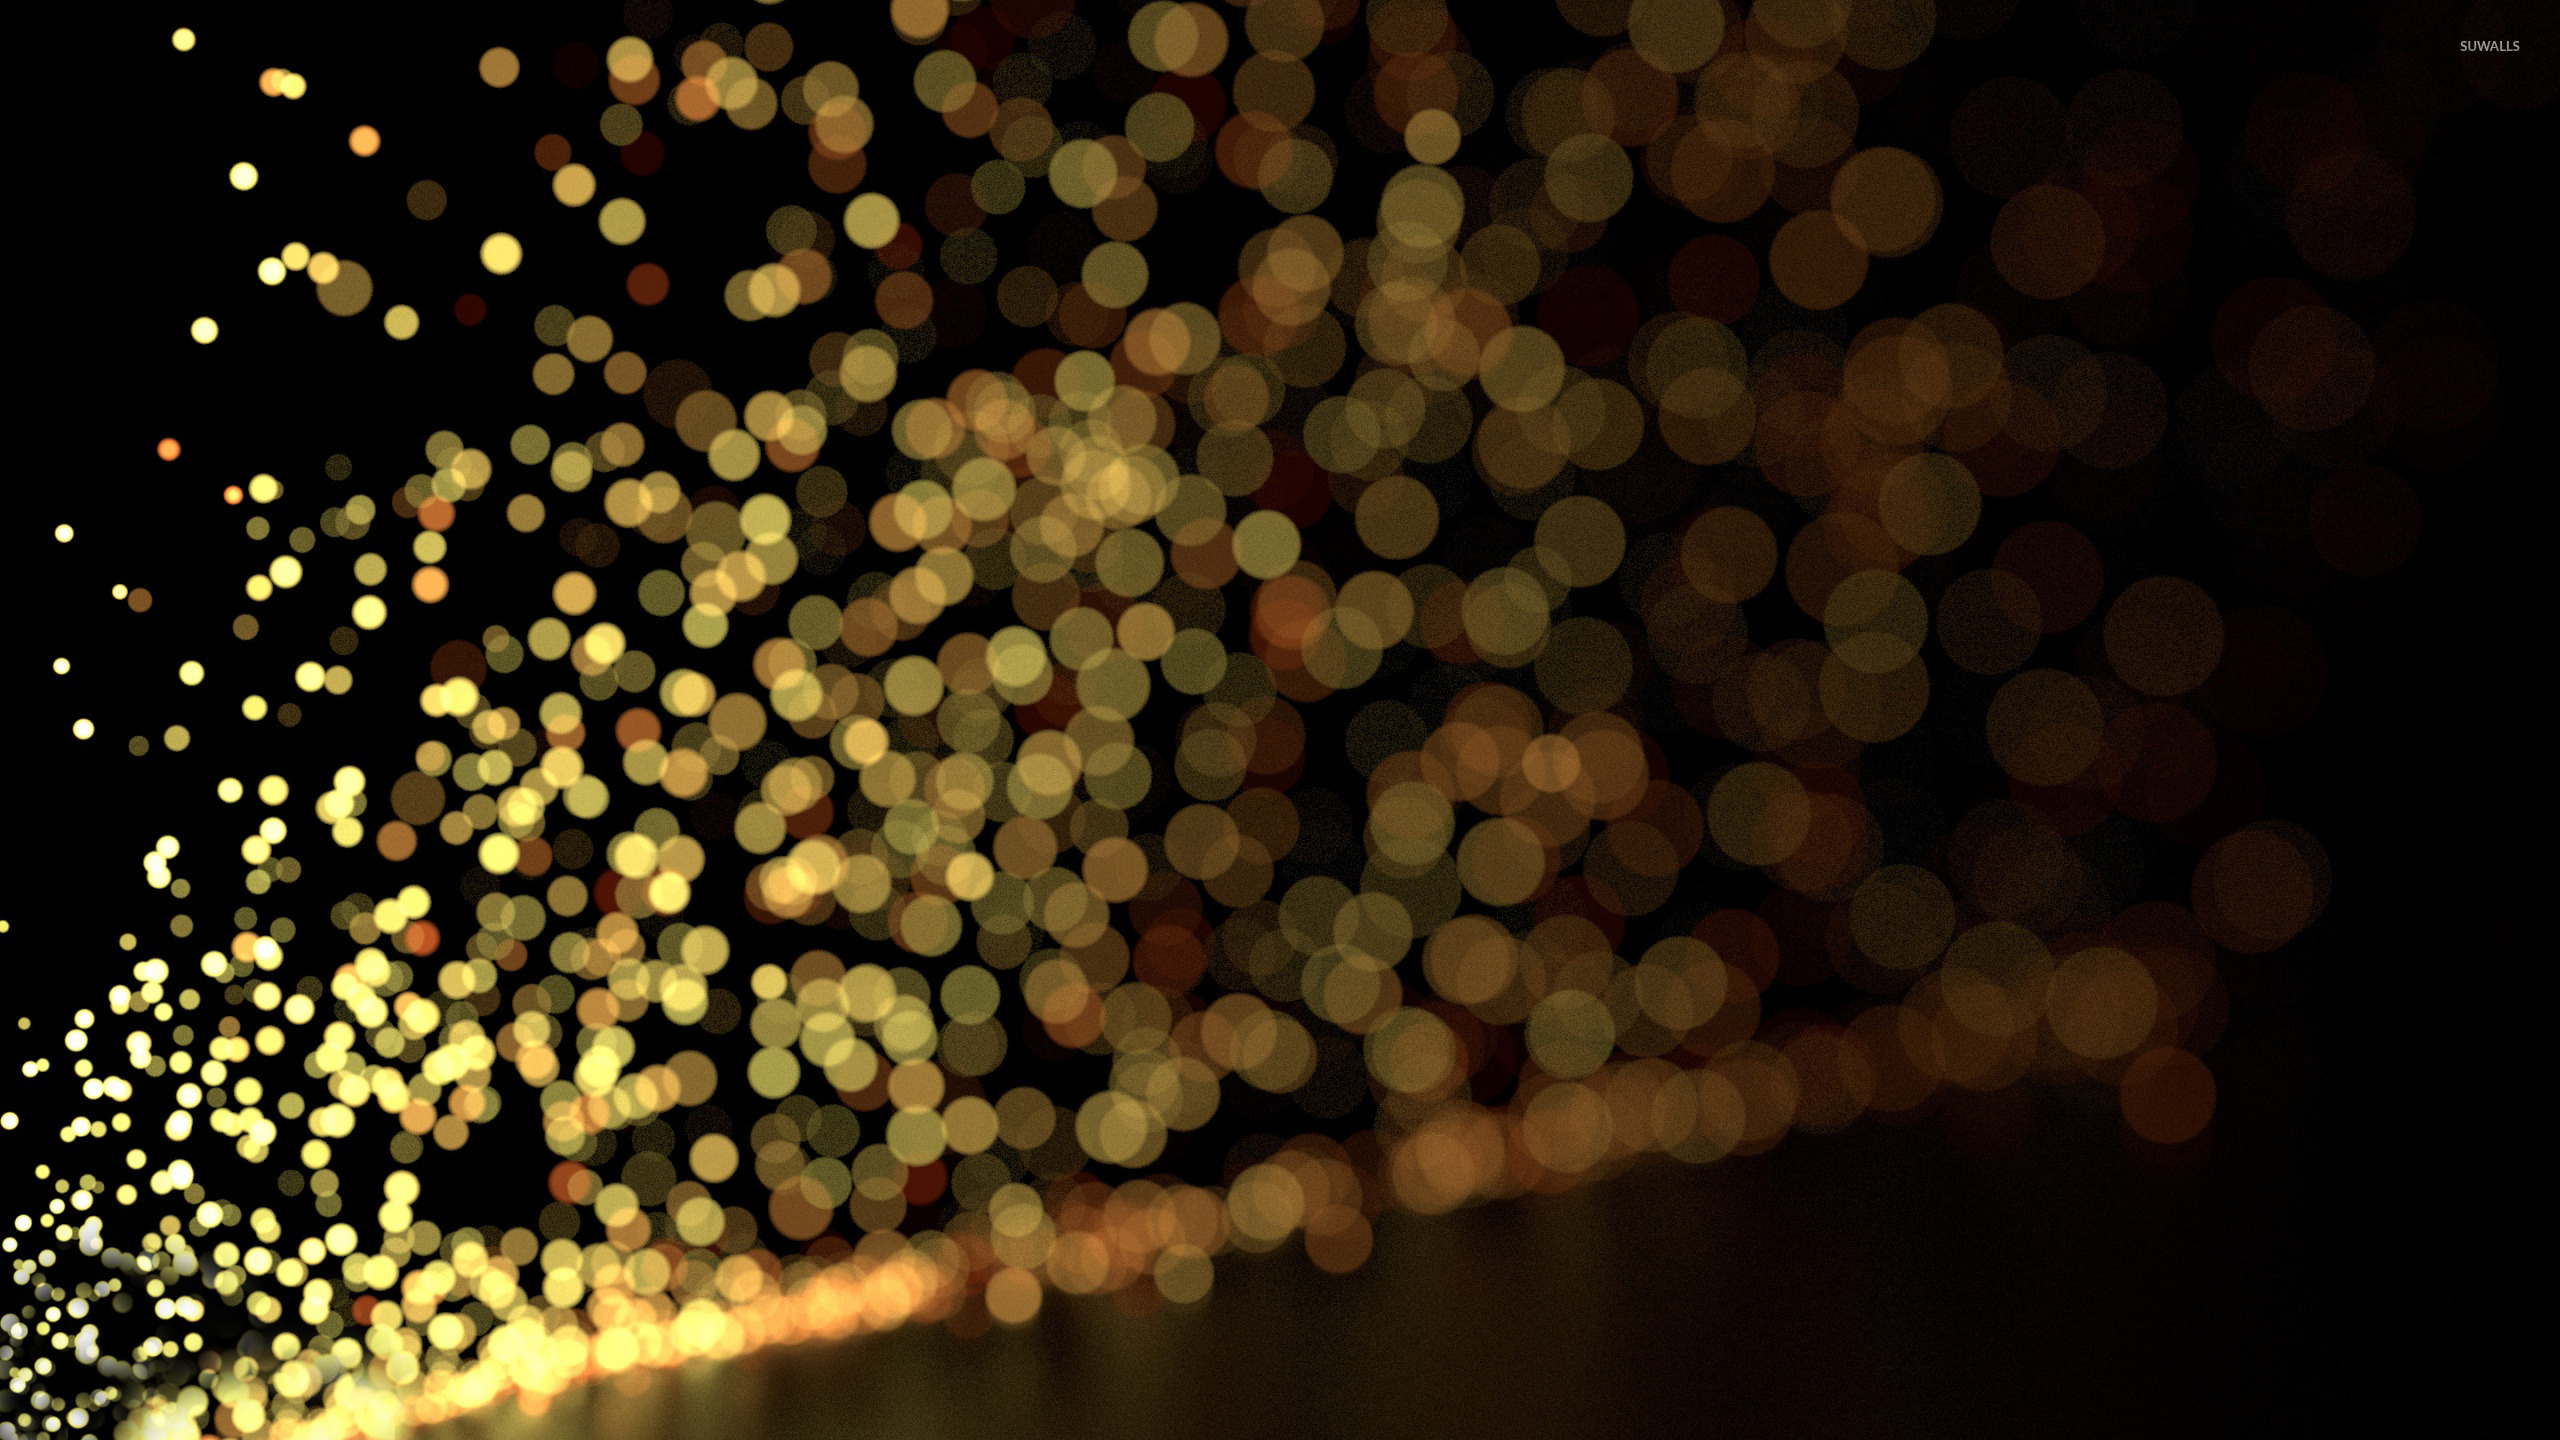 Blurry Lights 5 Wallpaper Abstract Wallpapers 27014